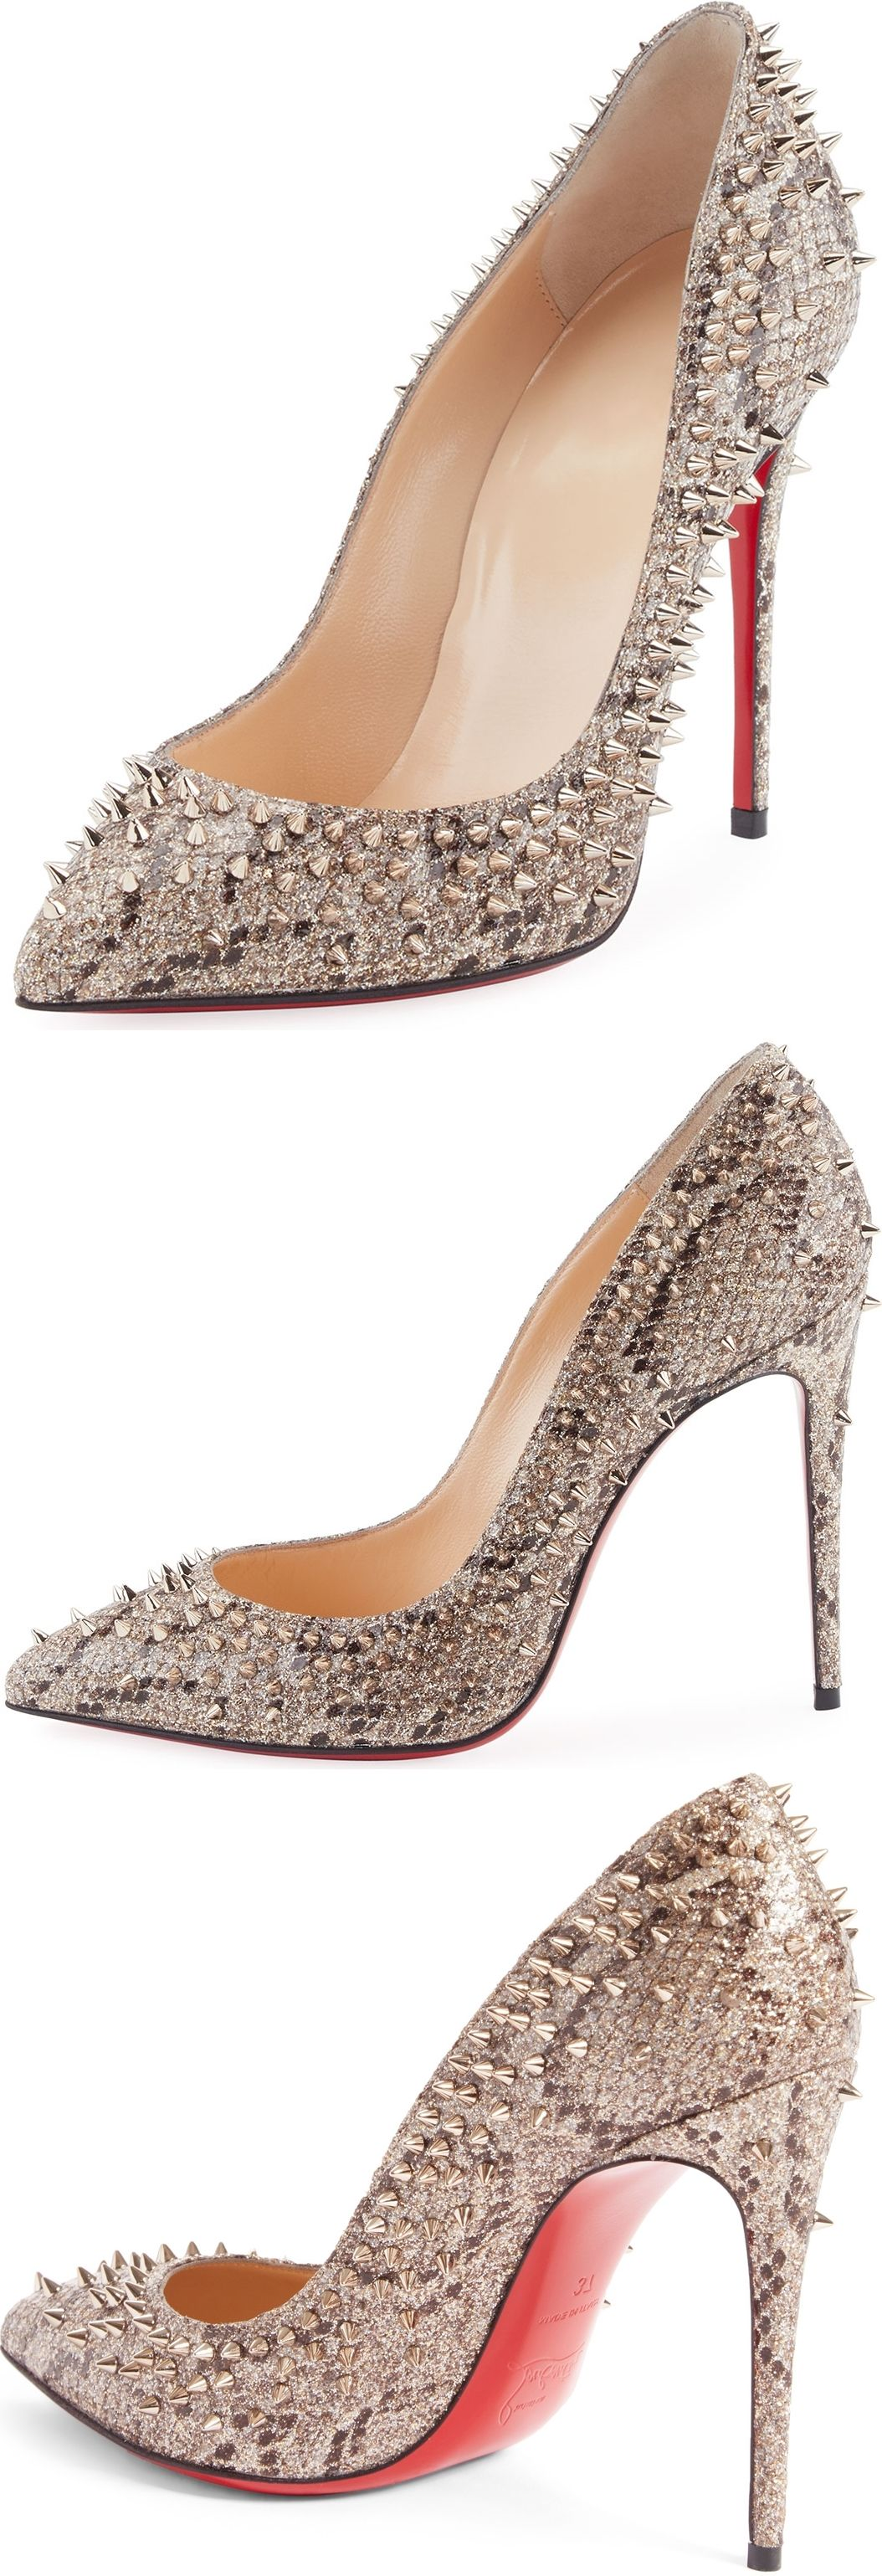 397d231114ee Christian Louboutin Escarpic Spike 100mm Red Sole Pump. How do you like  this snake-print glitter fabric pump with golden spikes